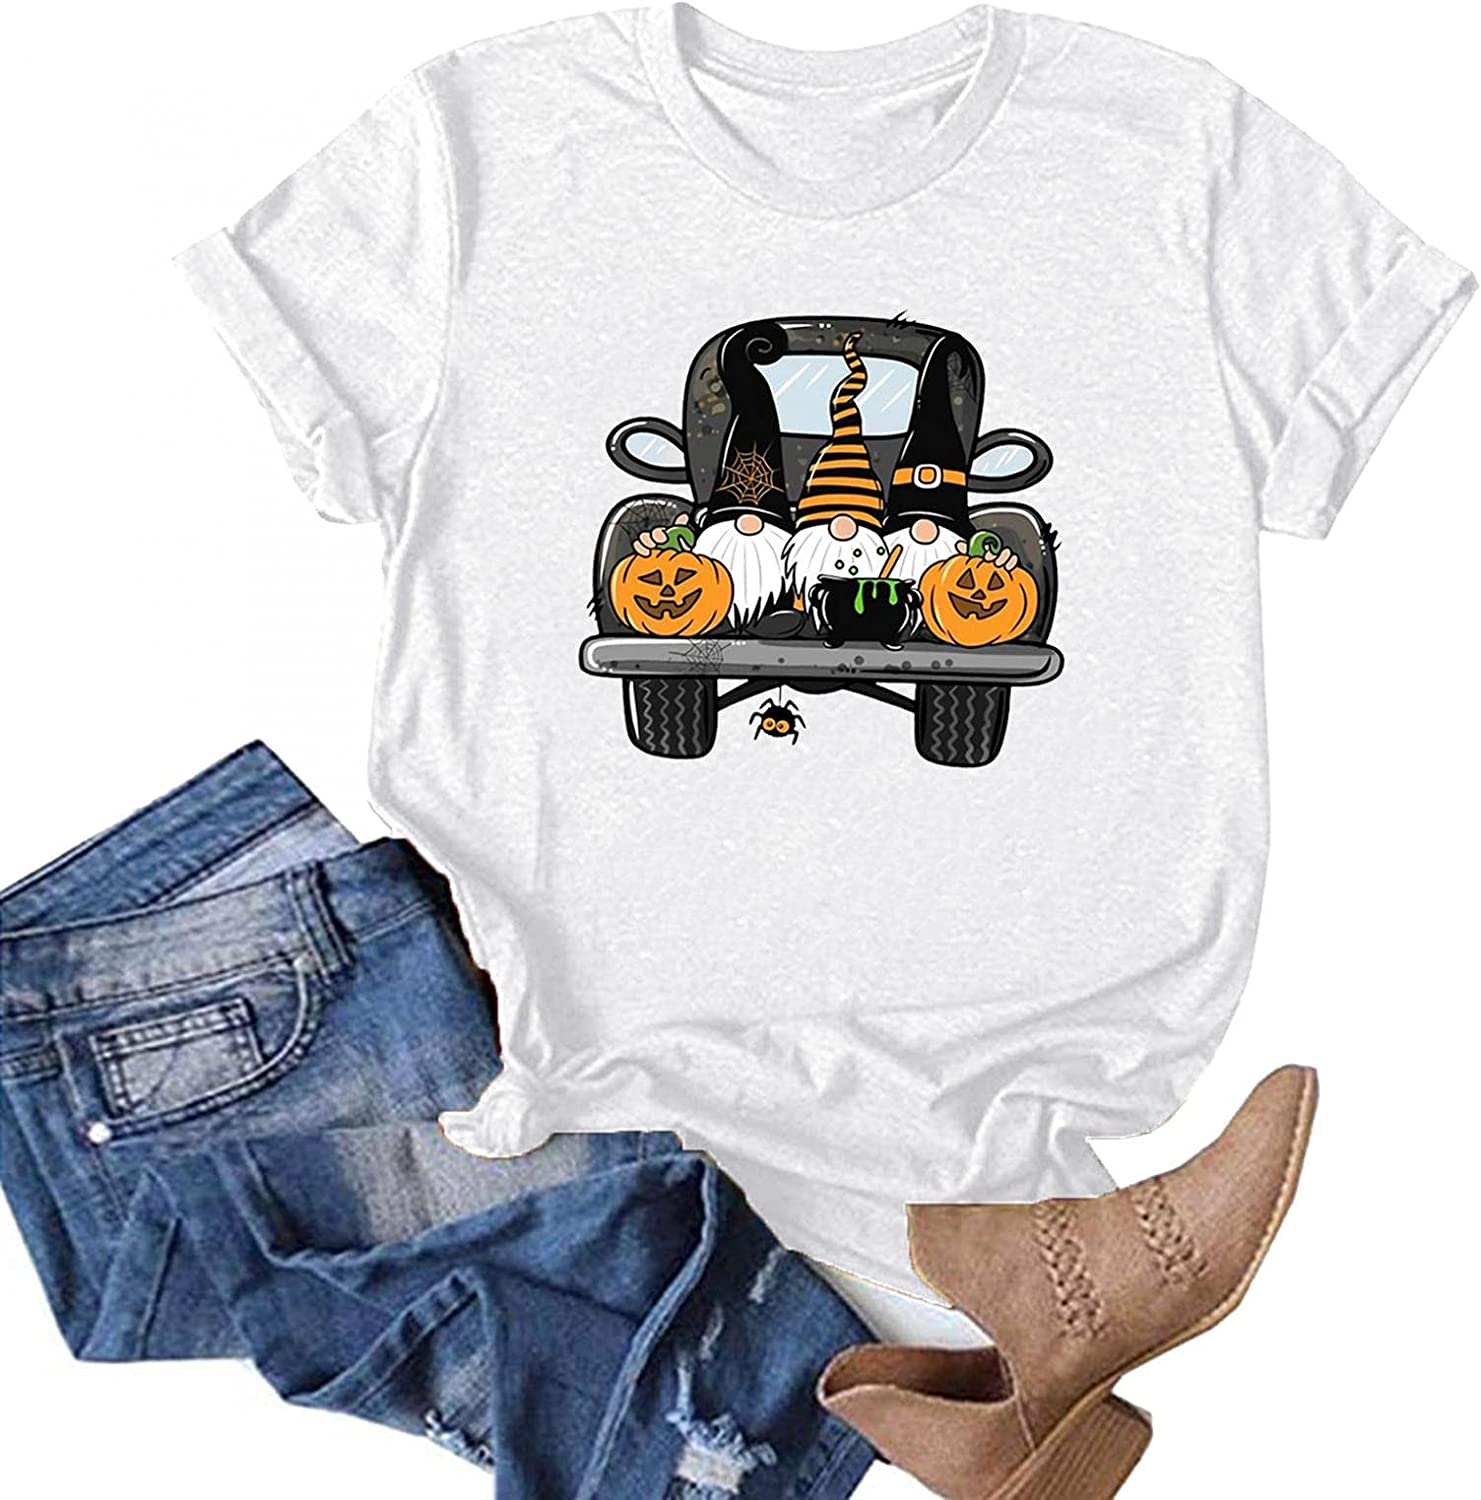 AODONG Womens Tops for Halloween Short Sleeves Gnomes Pumpkin Graphic T-Shirts Pullover Tops Blouse Halloween